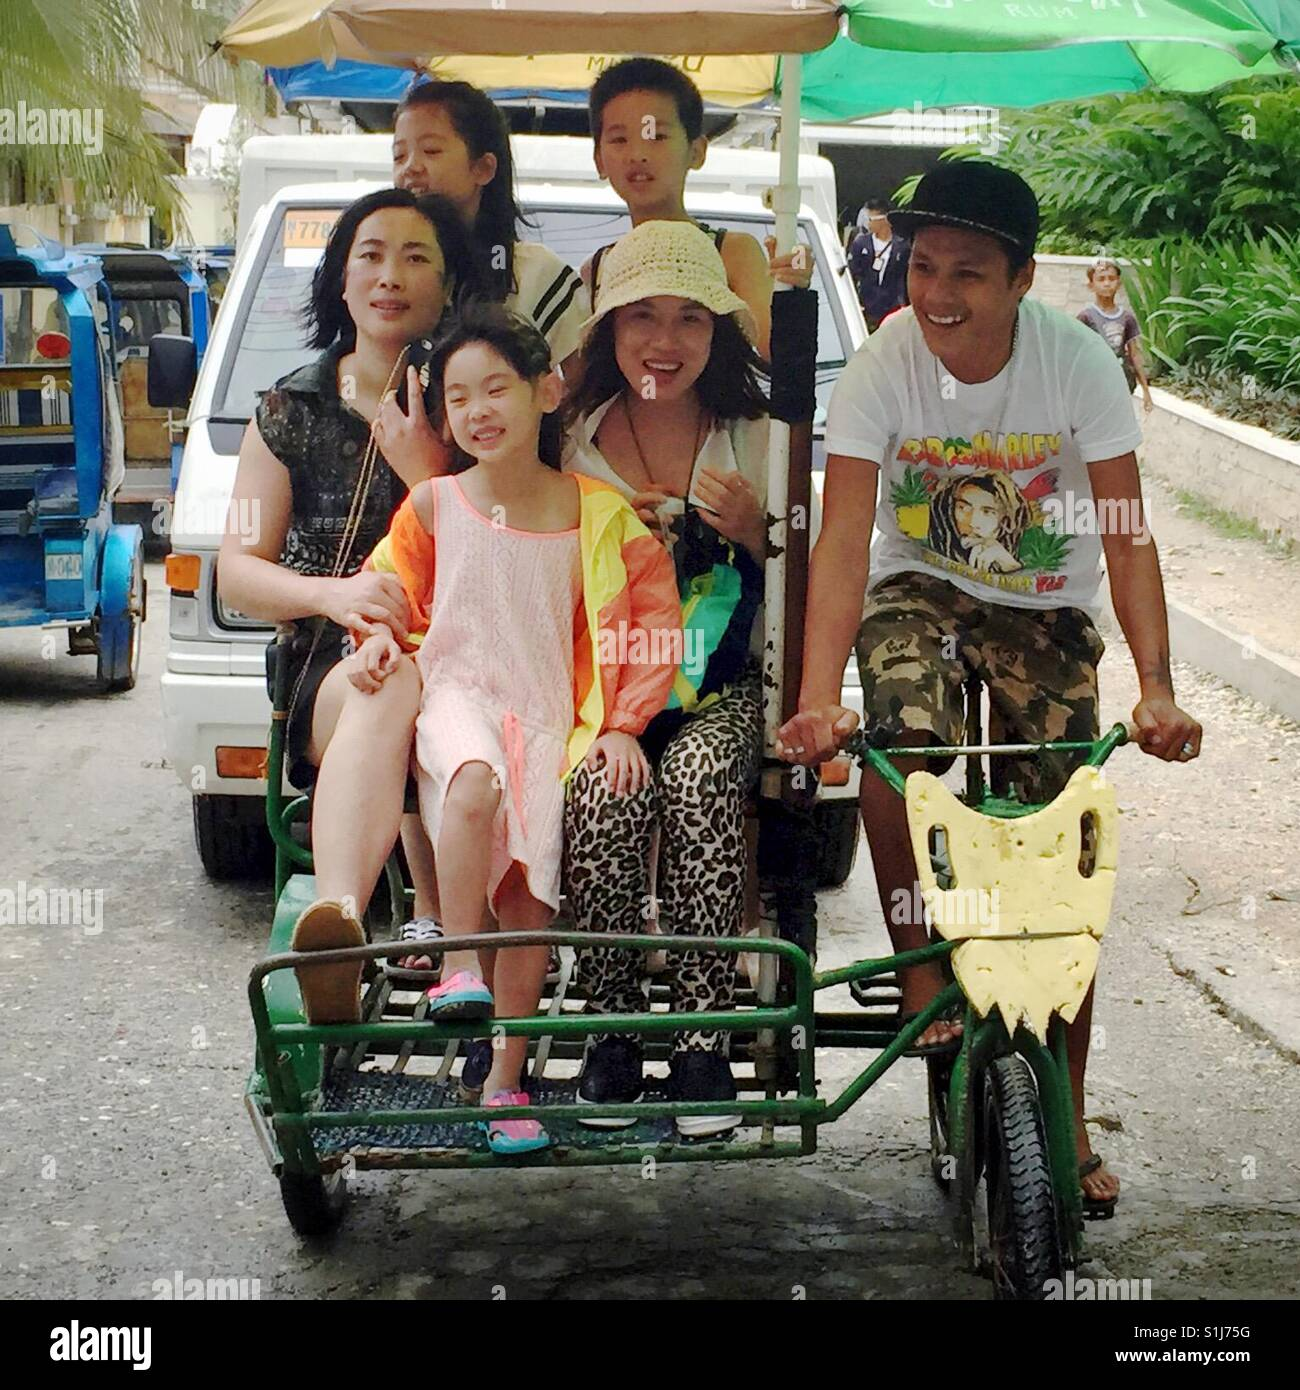 Group of happy people riding on a trike in Philippines - Stock Image